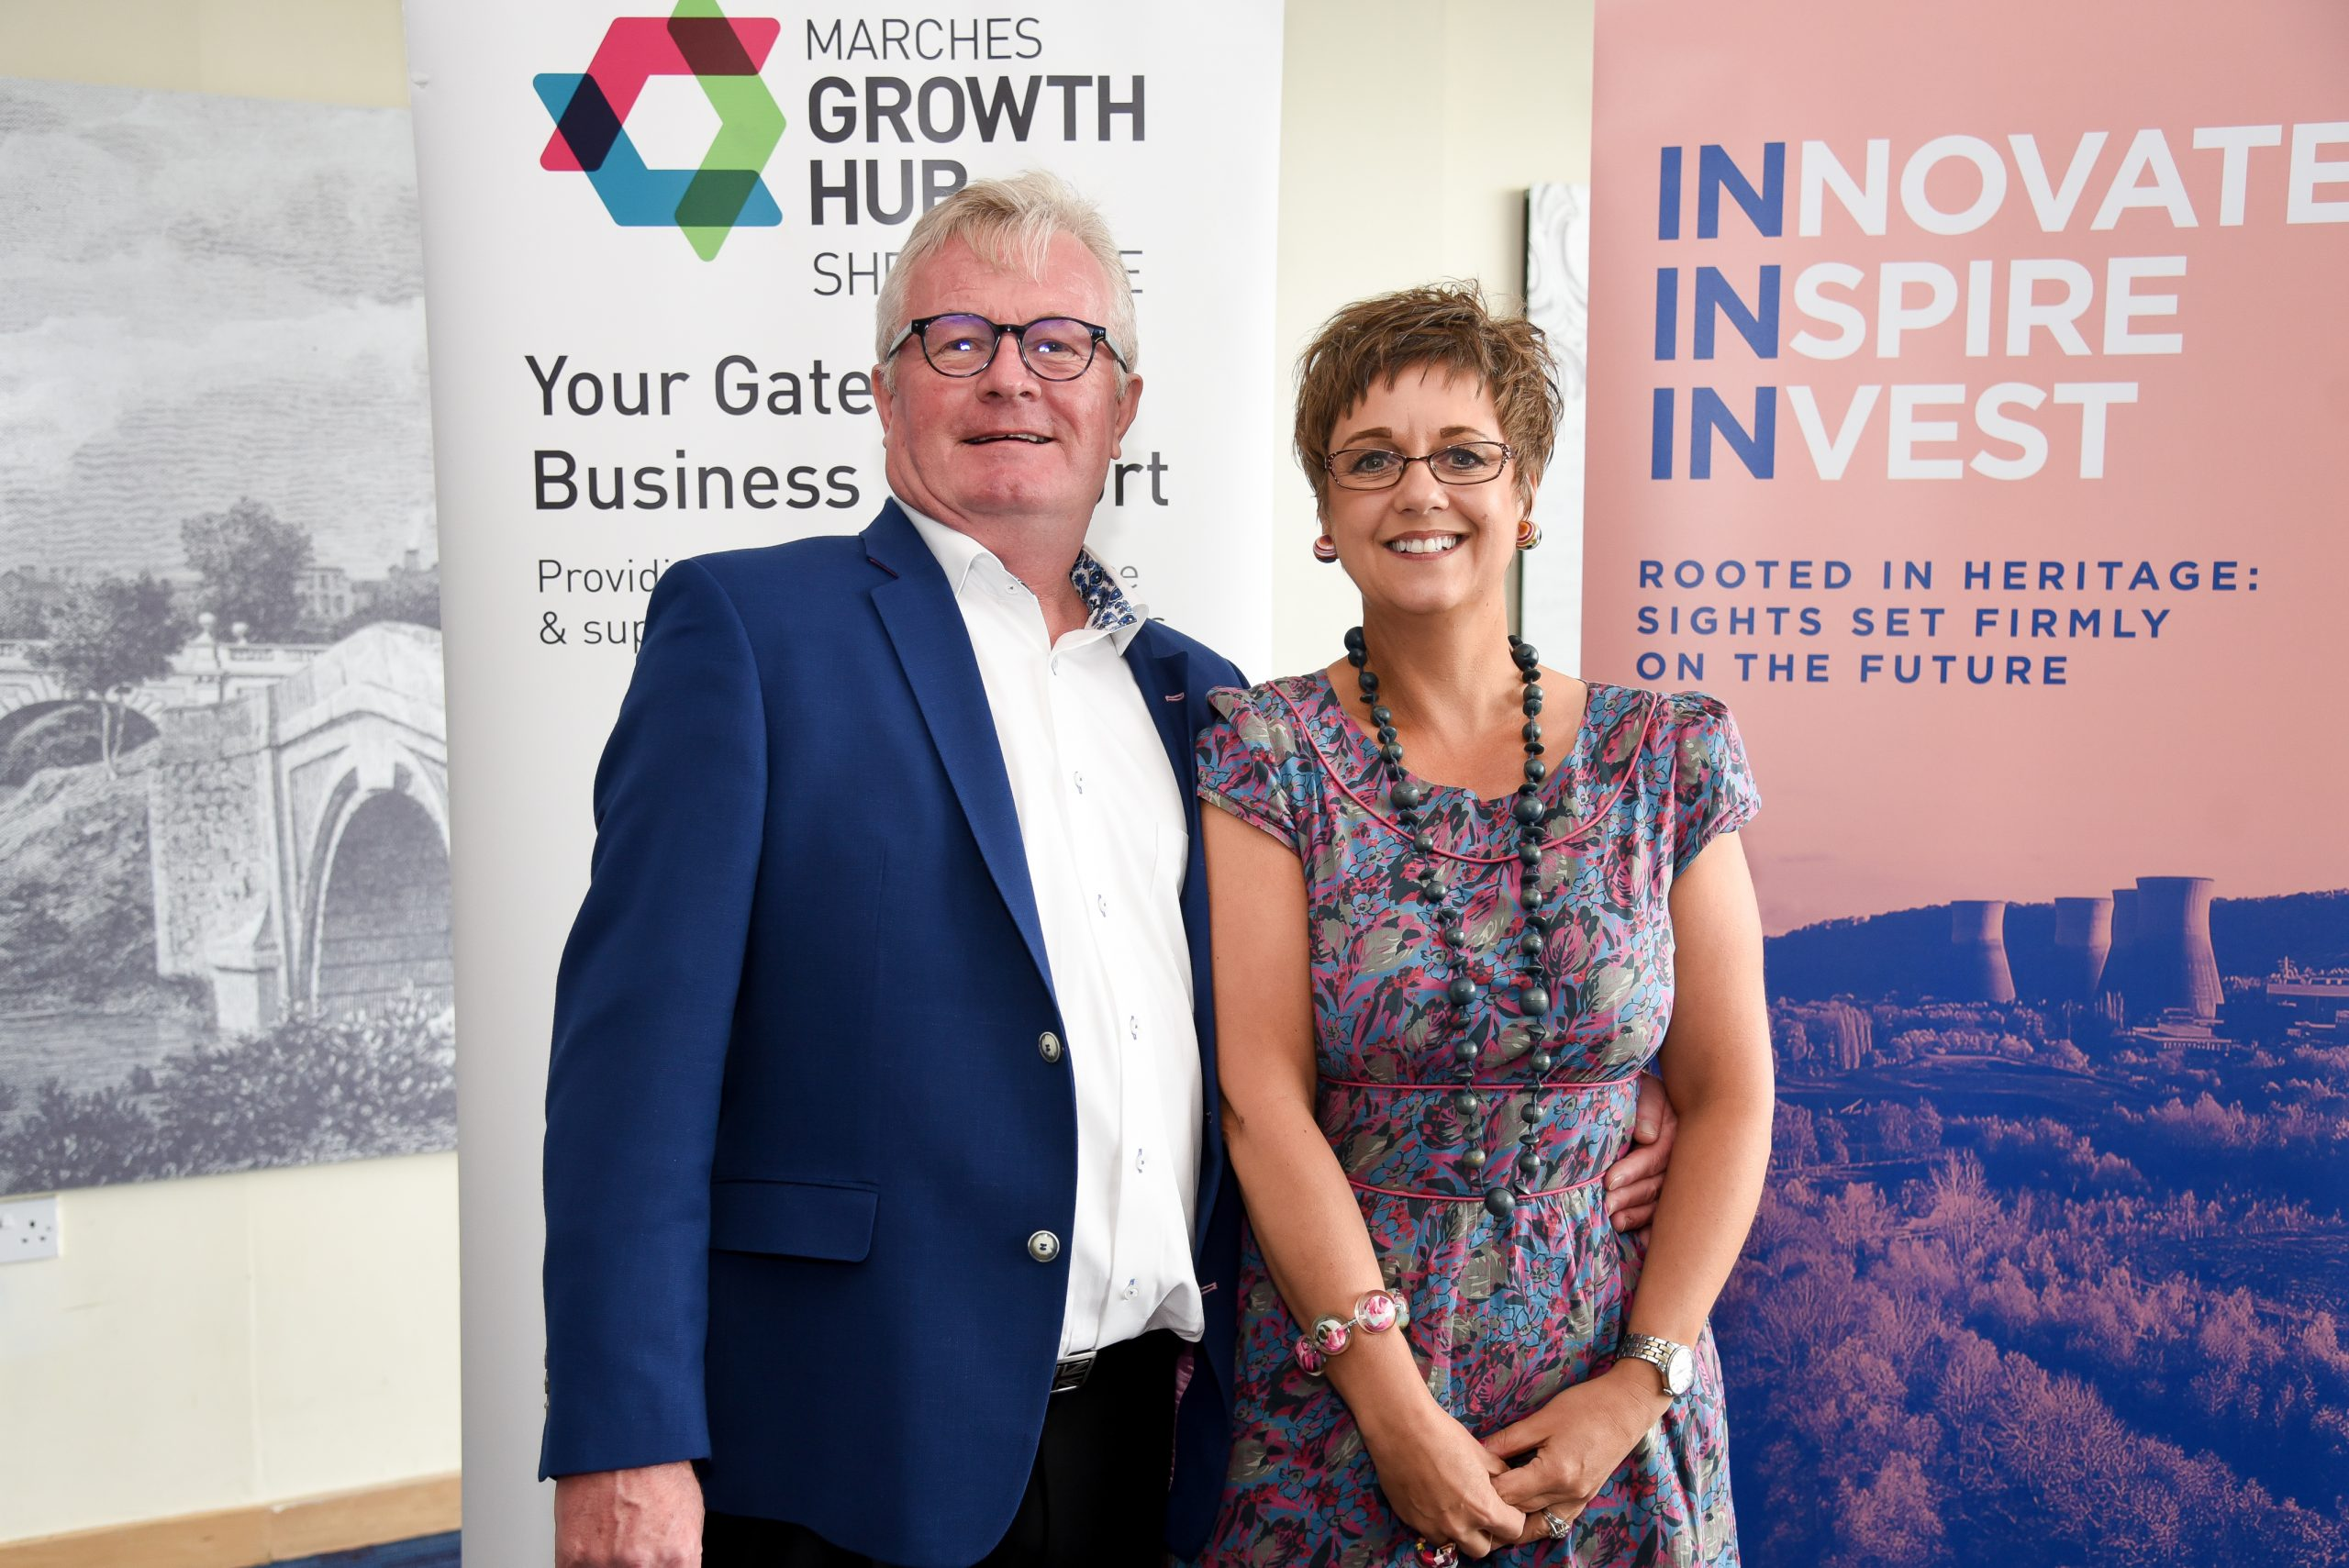 1._Marches_Growth_Hub_chairman_Paul_Hinkins_and_Marches_Growth_Hub_Shropshire_manager_Emma_Chapman